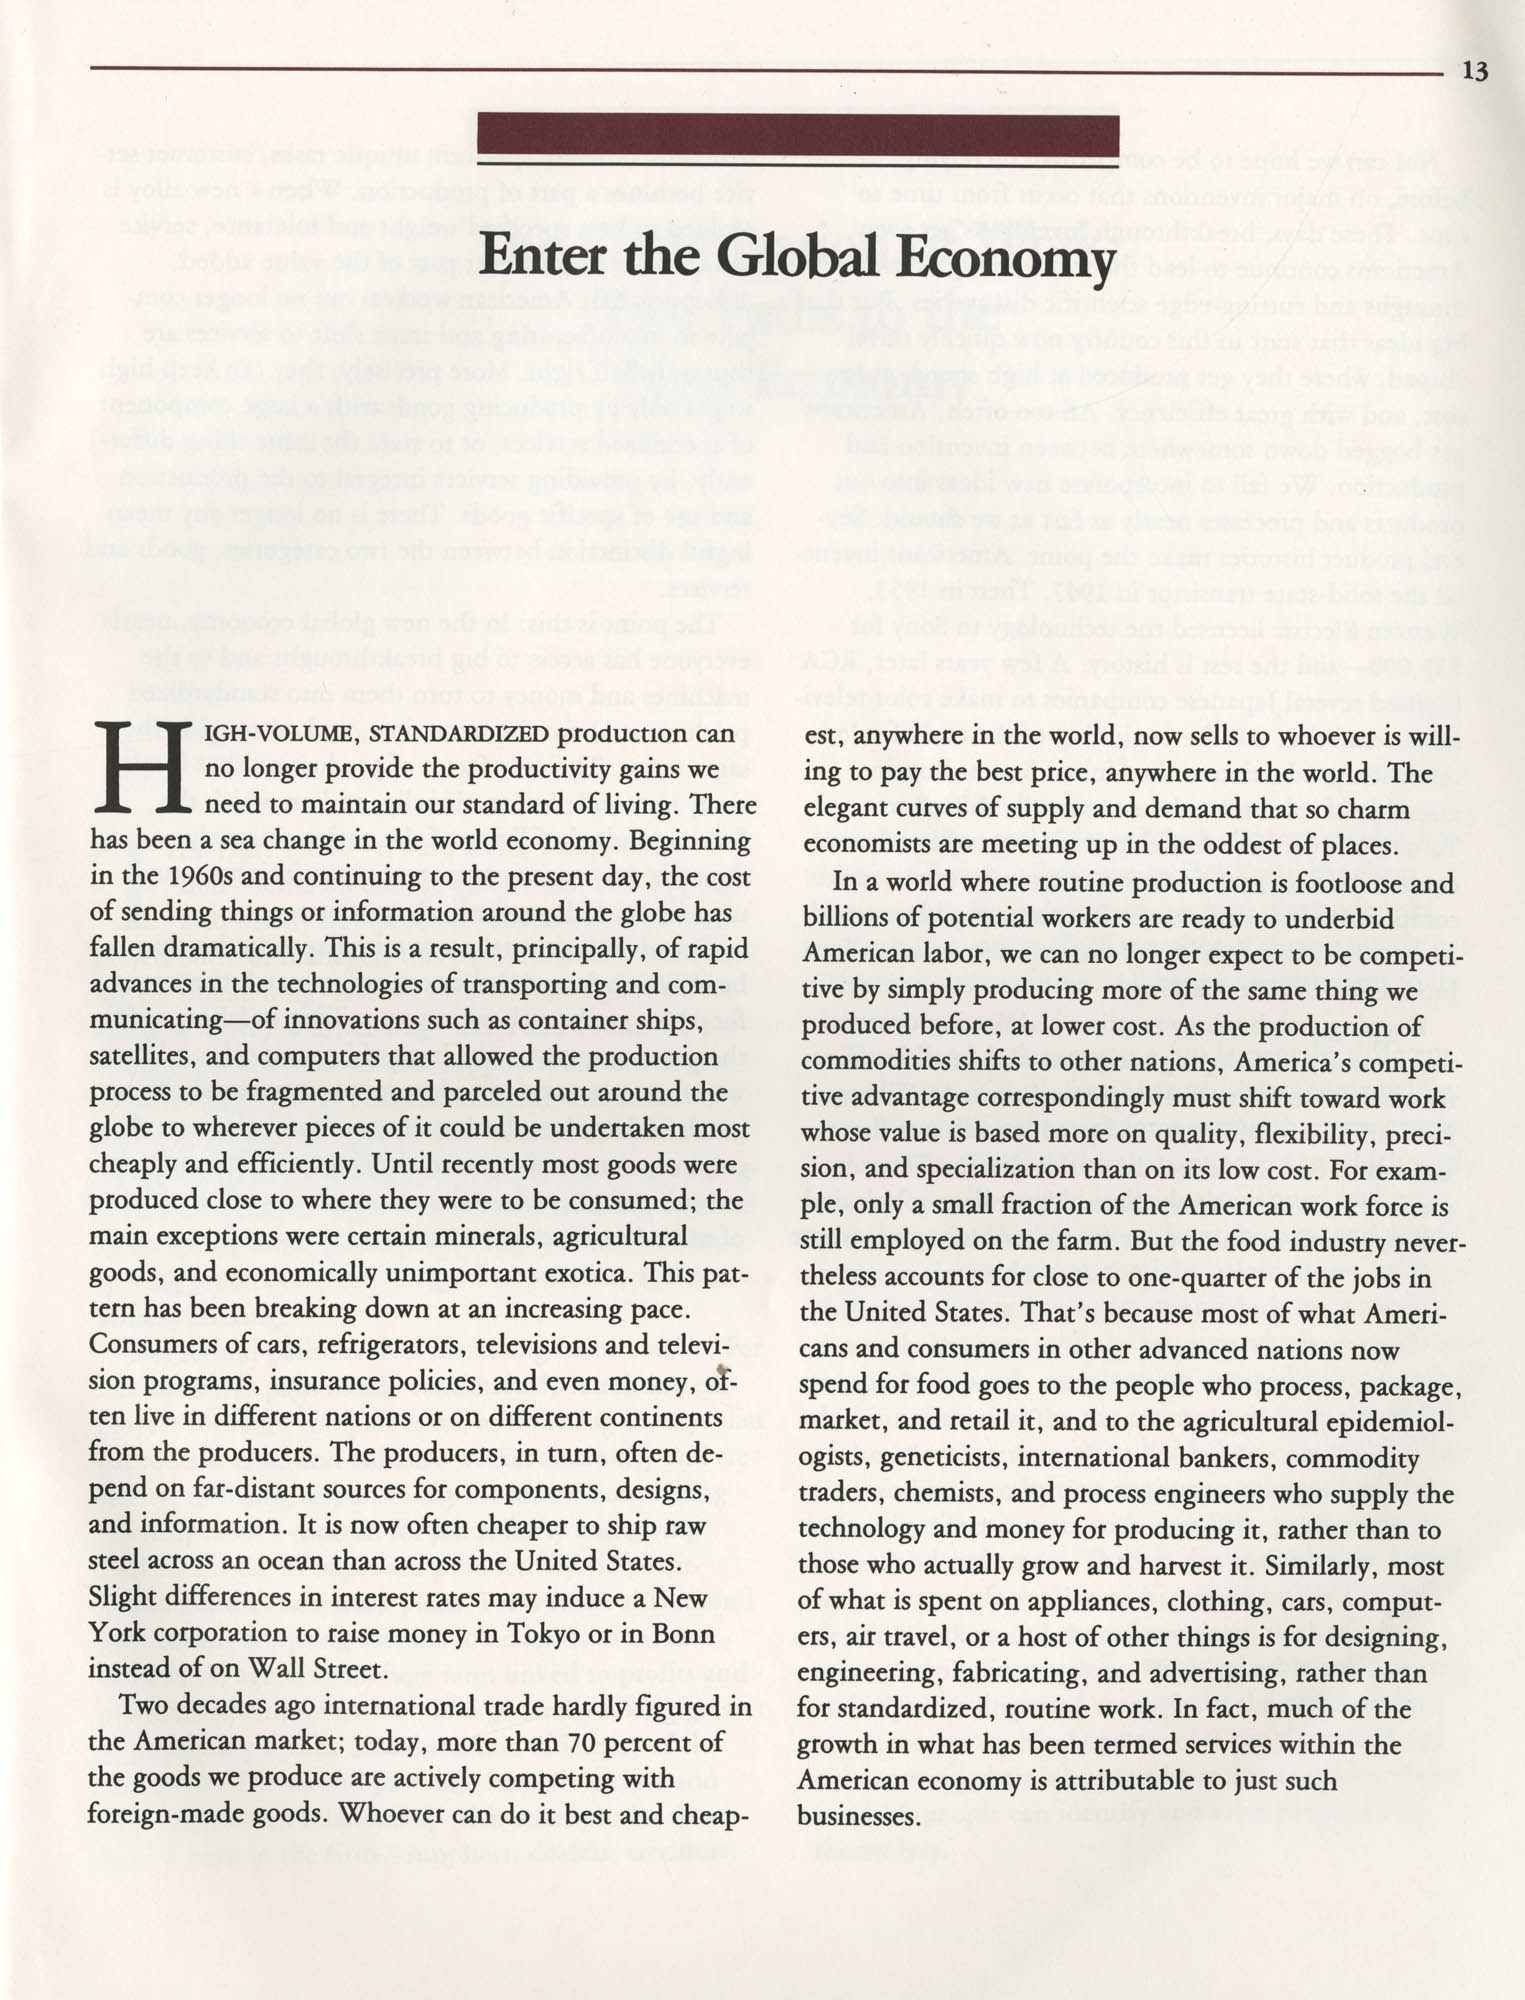 Education and the Next Economy, Page 13